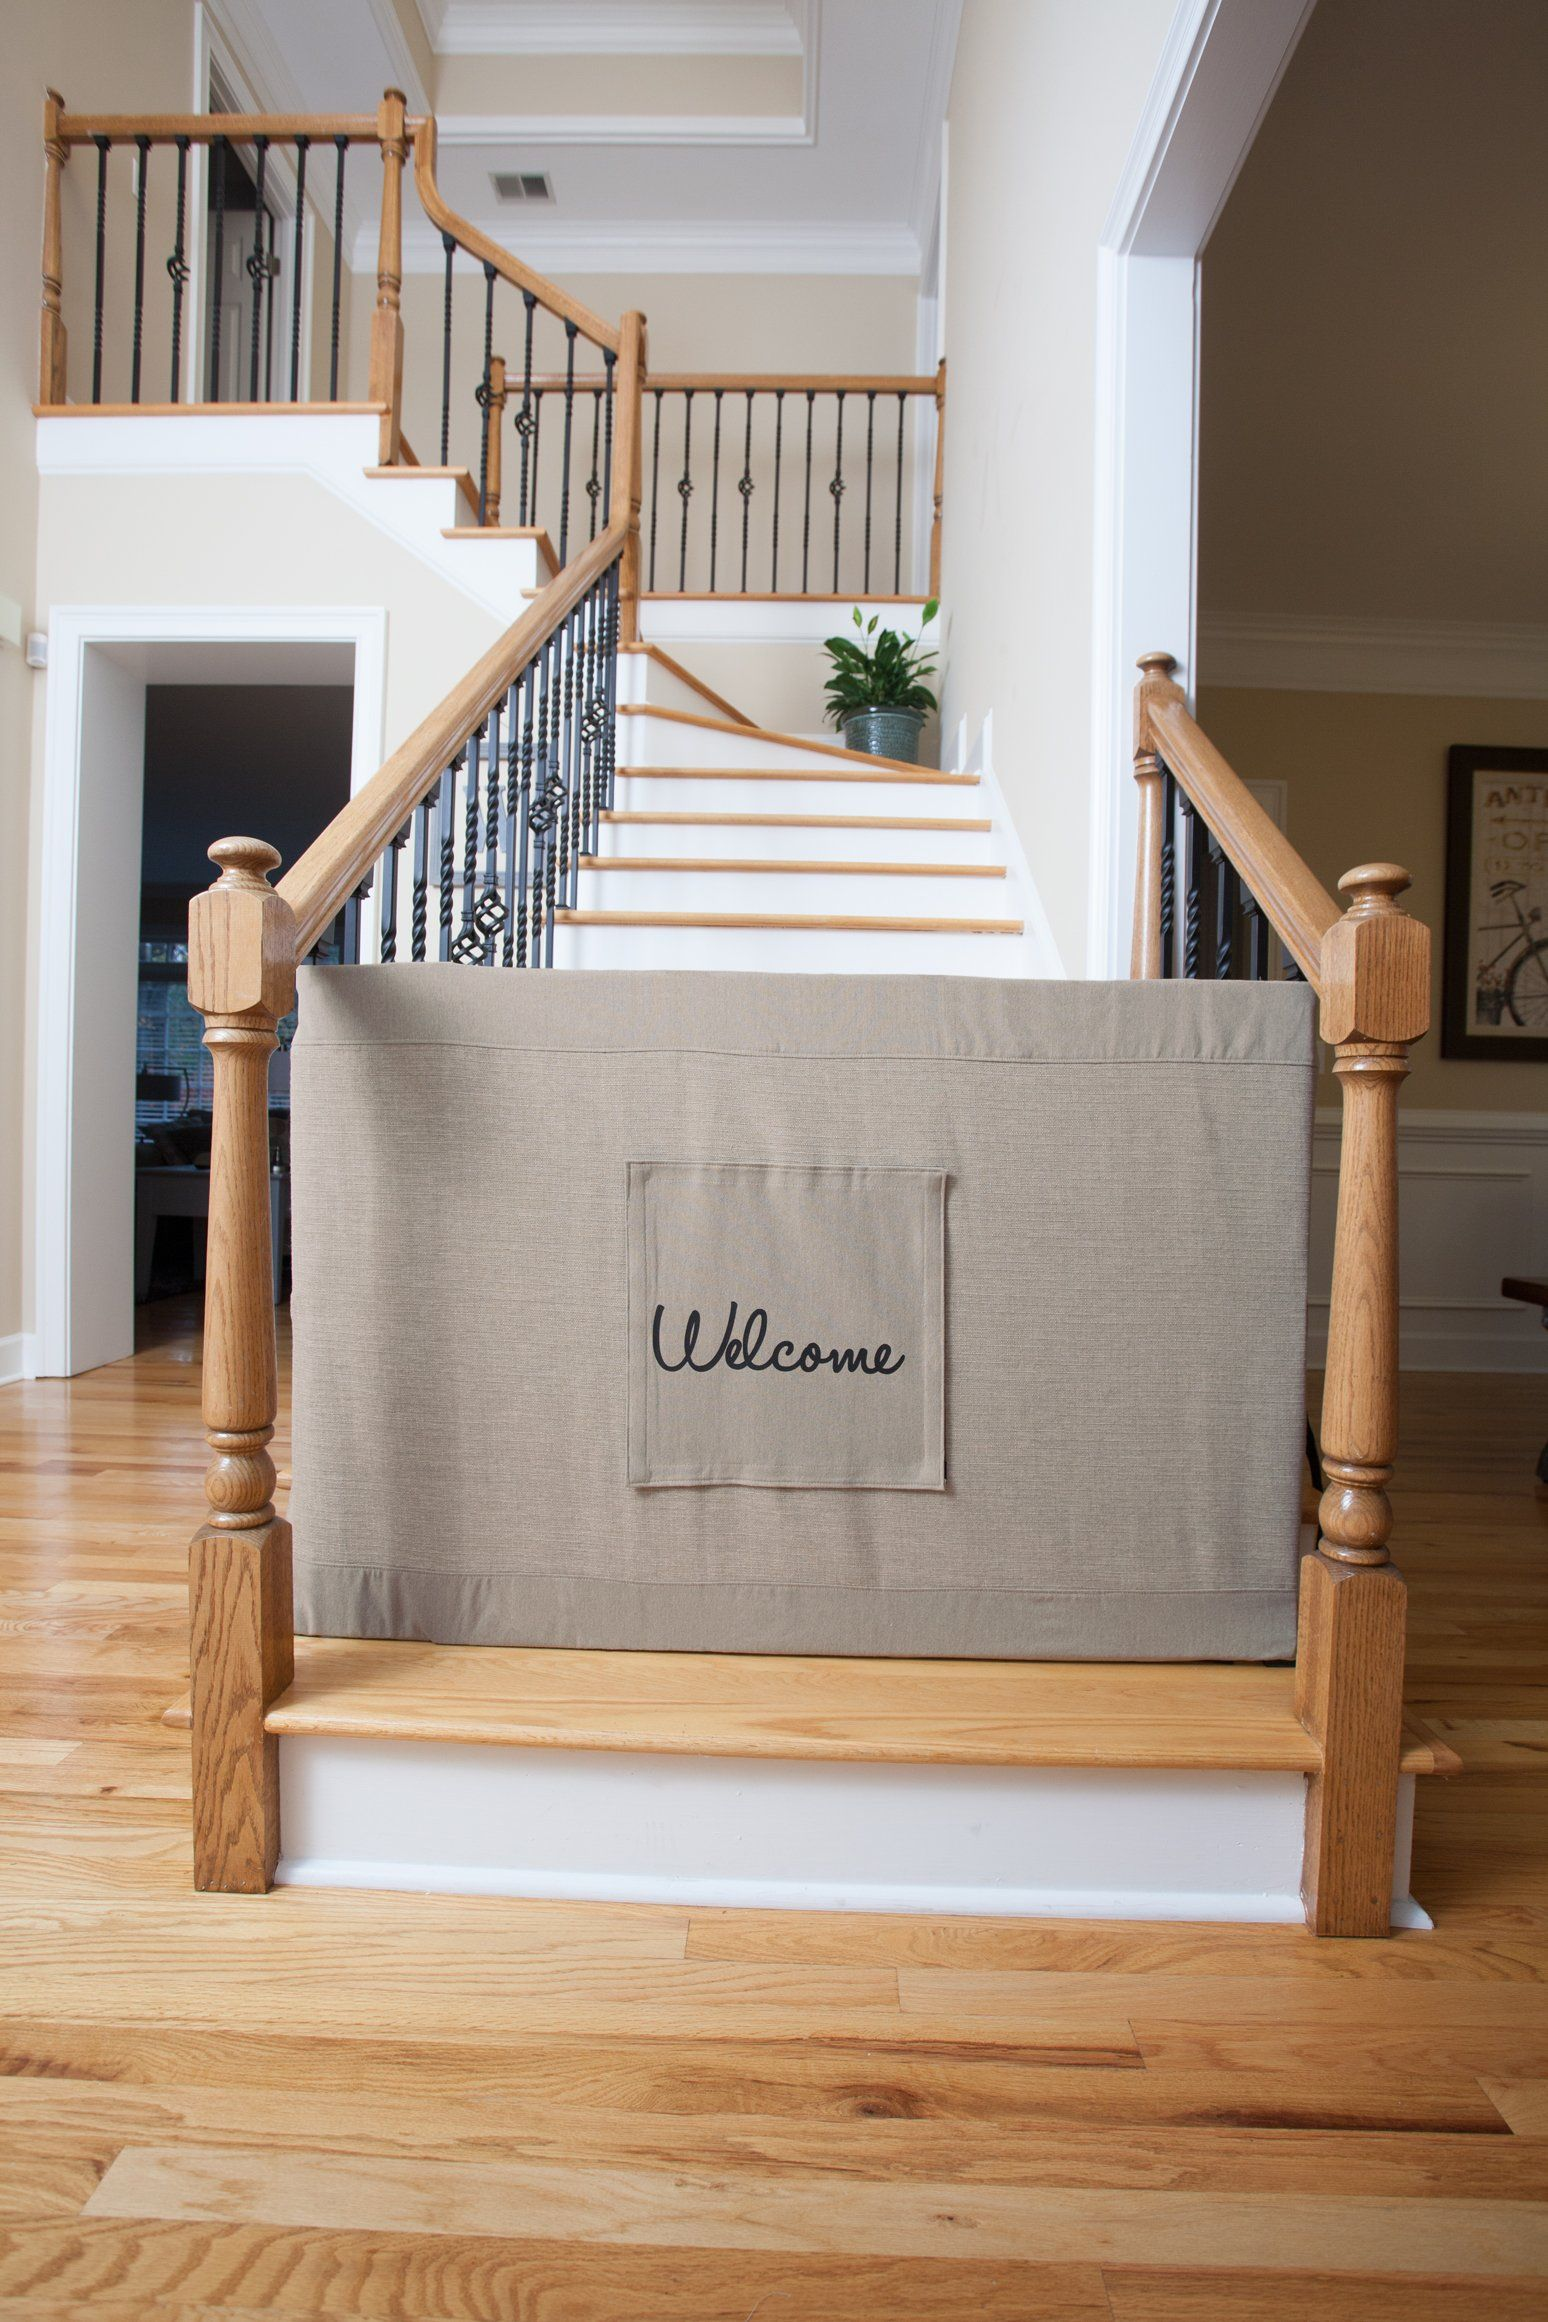 Banister to banister stair barriers w personalization